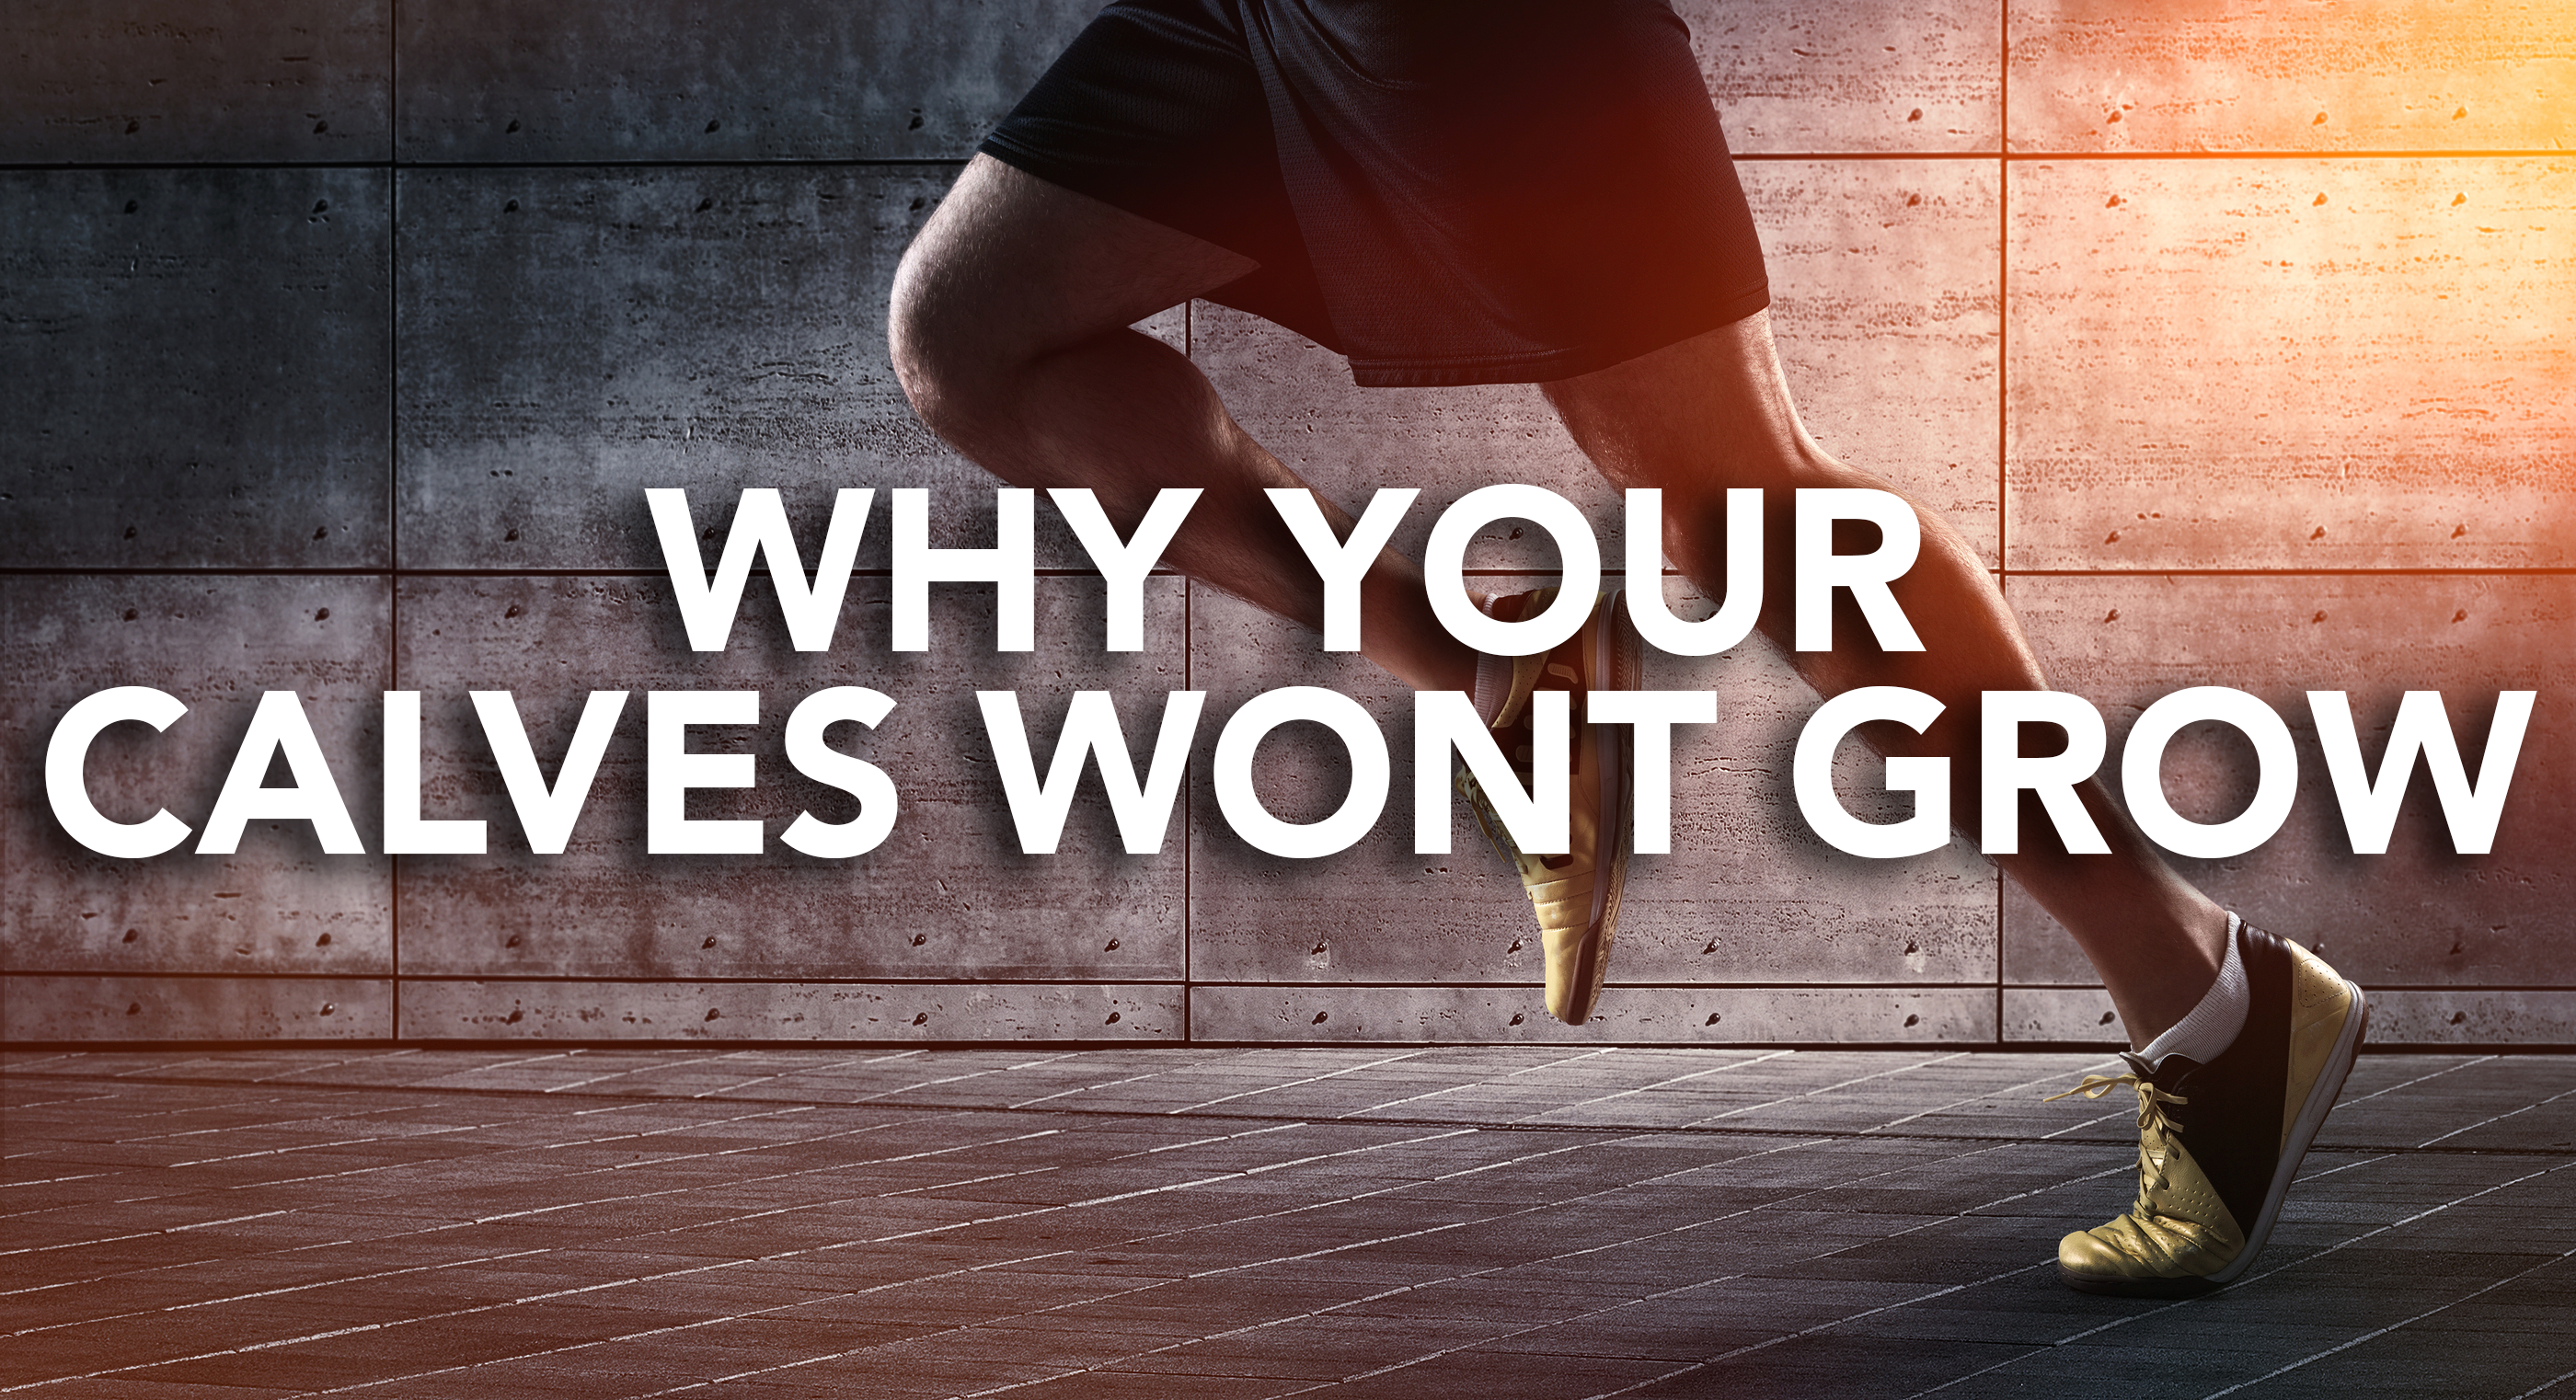 Why Your Calves Won't Grow